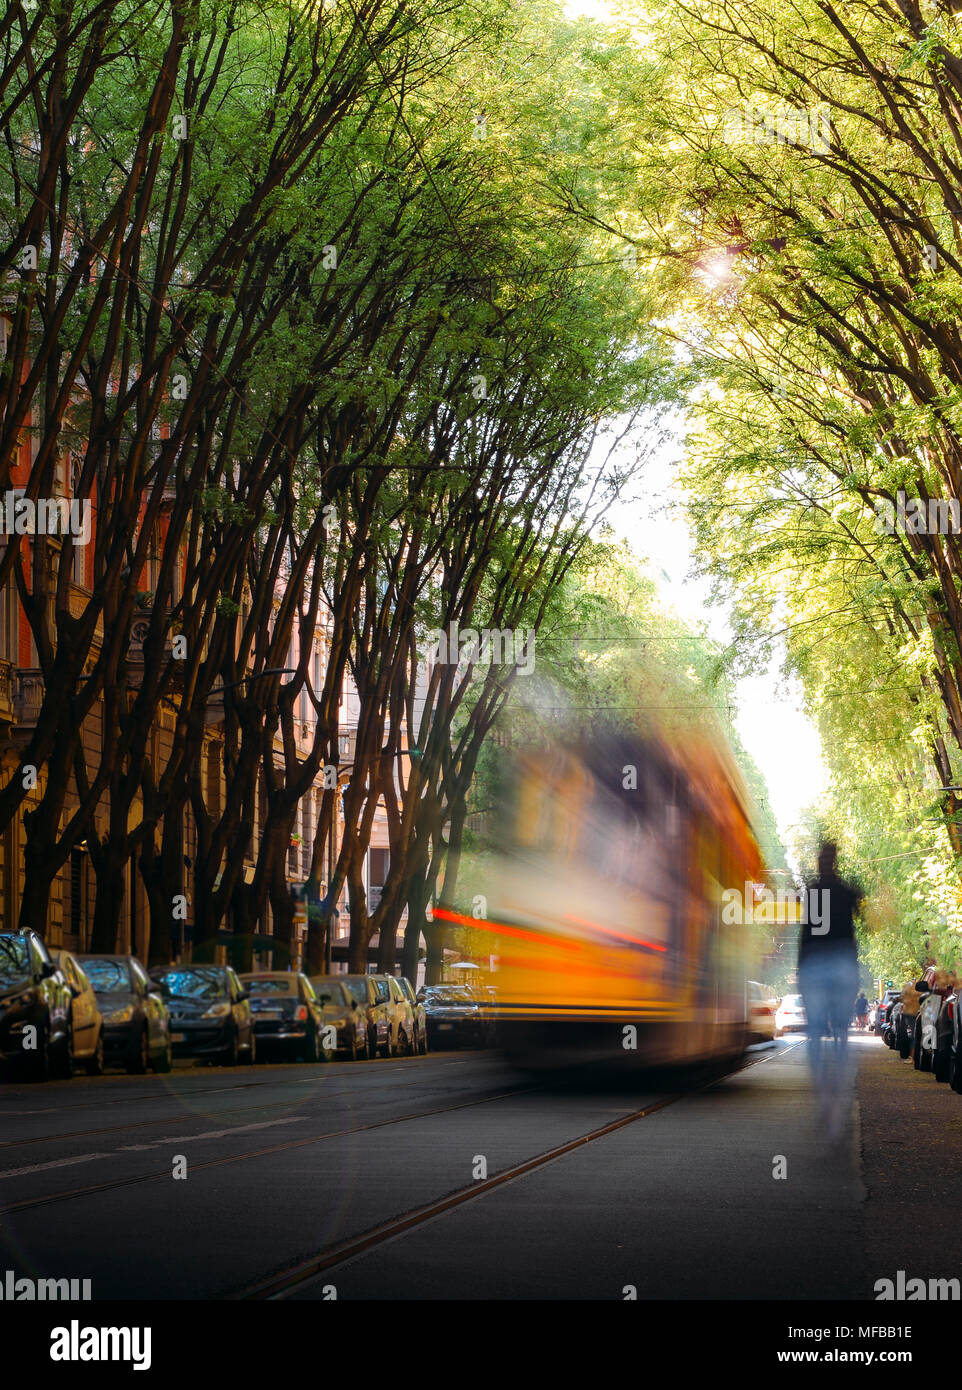 Unidentifiable person running towards an out of blur tram on a tree-lined path on the street - stressful situation in urban setting - Stock Image